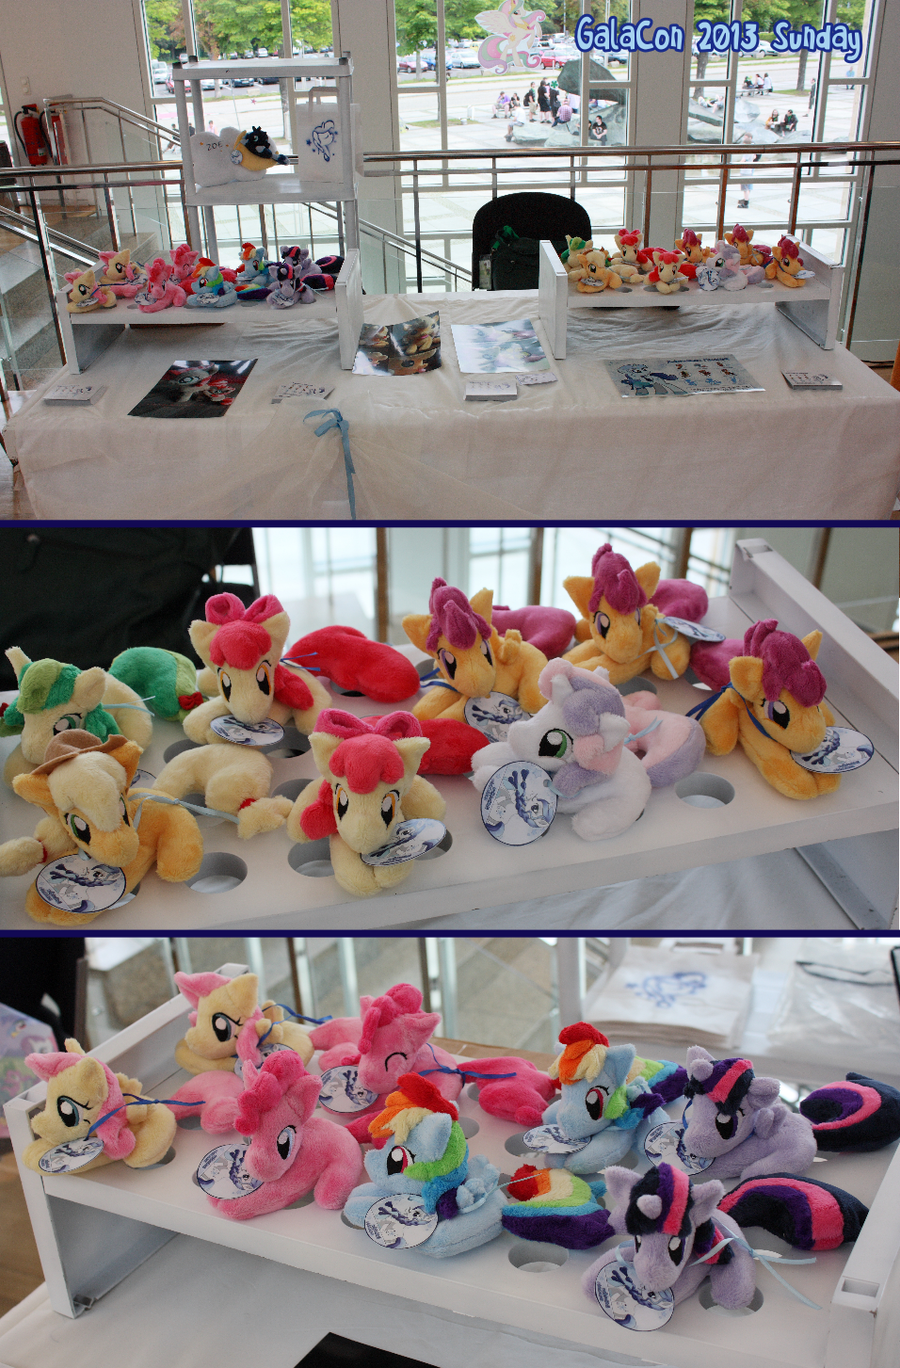 GalaCon 2013 impressions 2 by zuckerschnuti